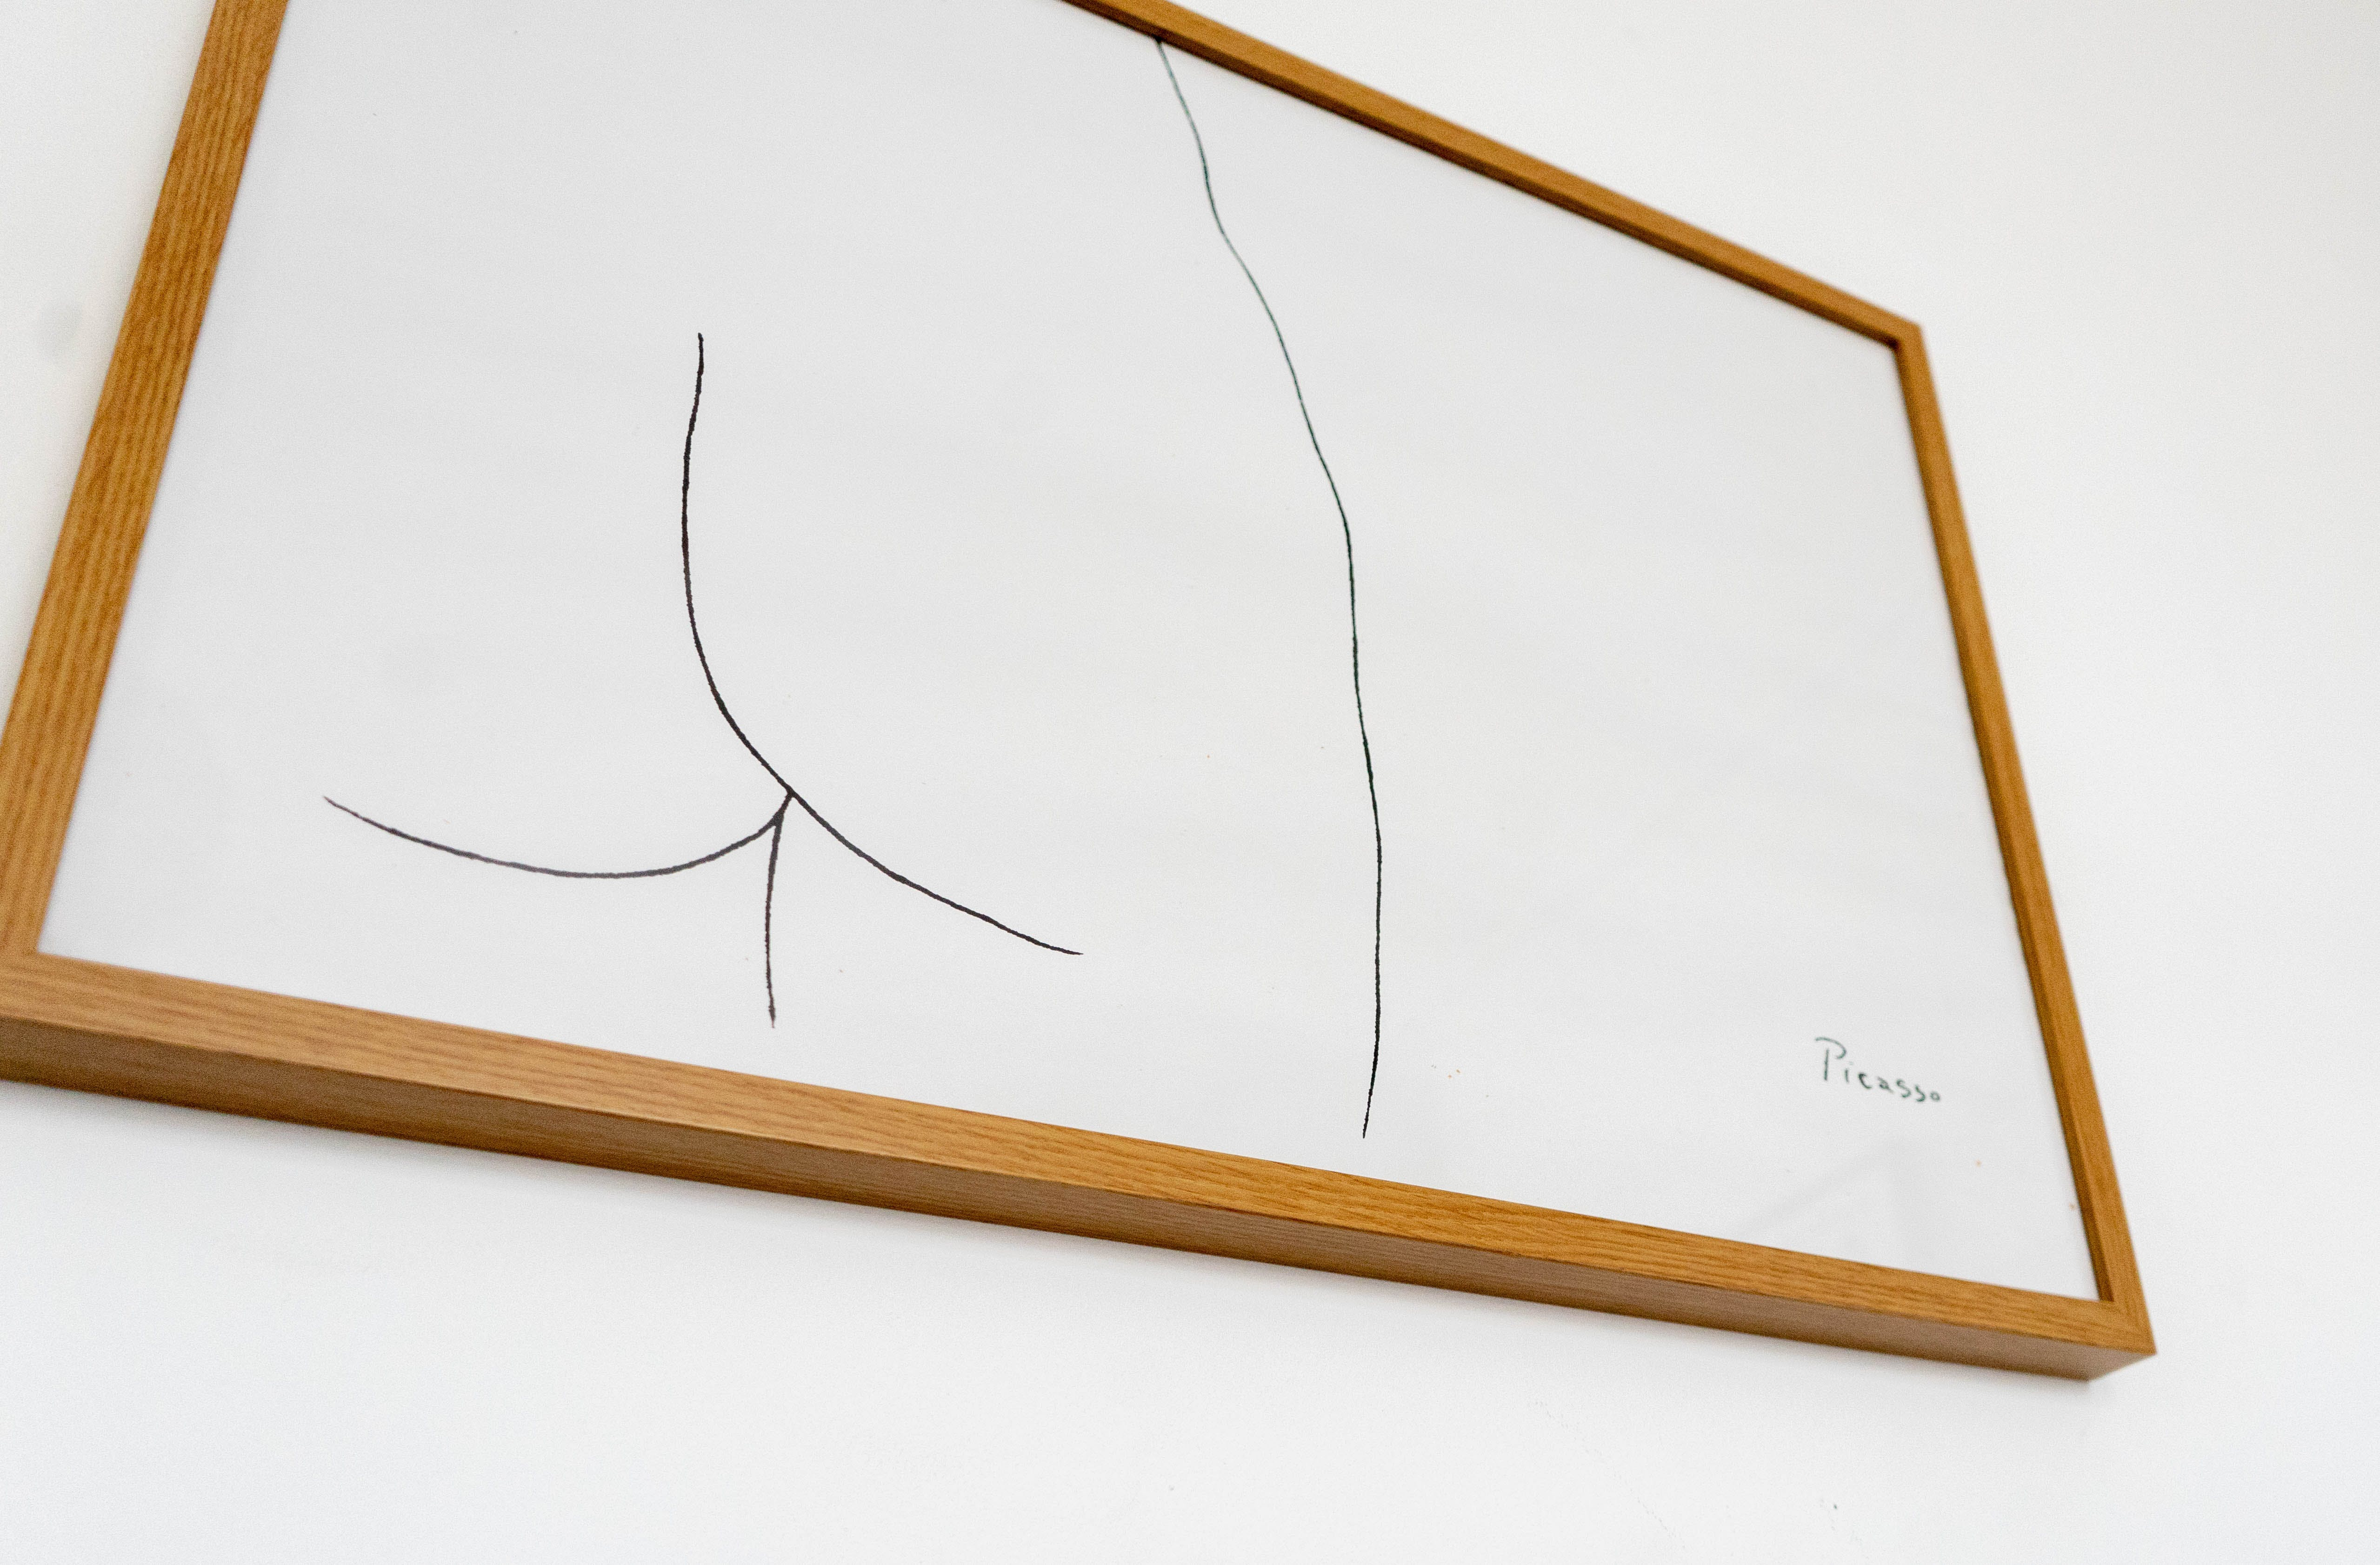 Lines on Whiteboard